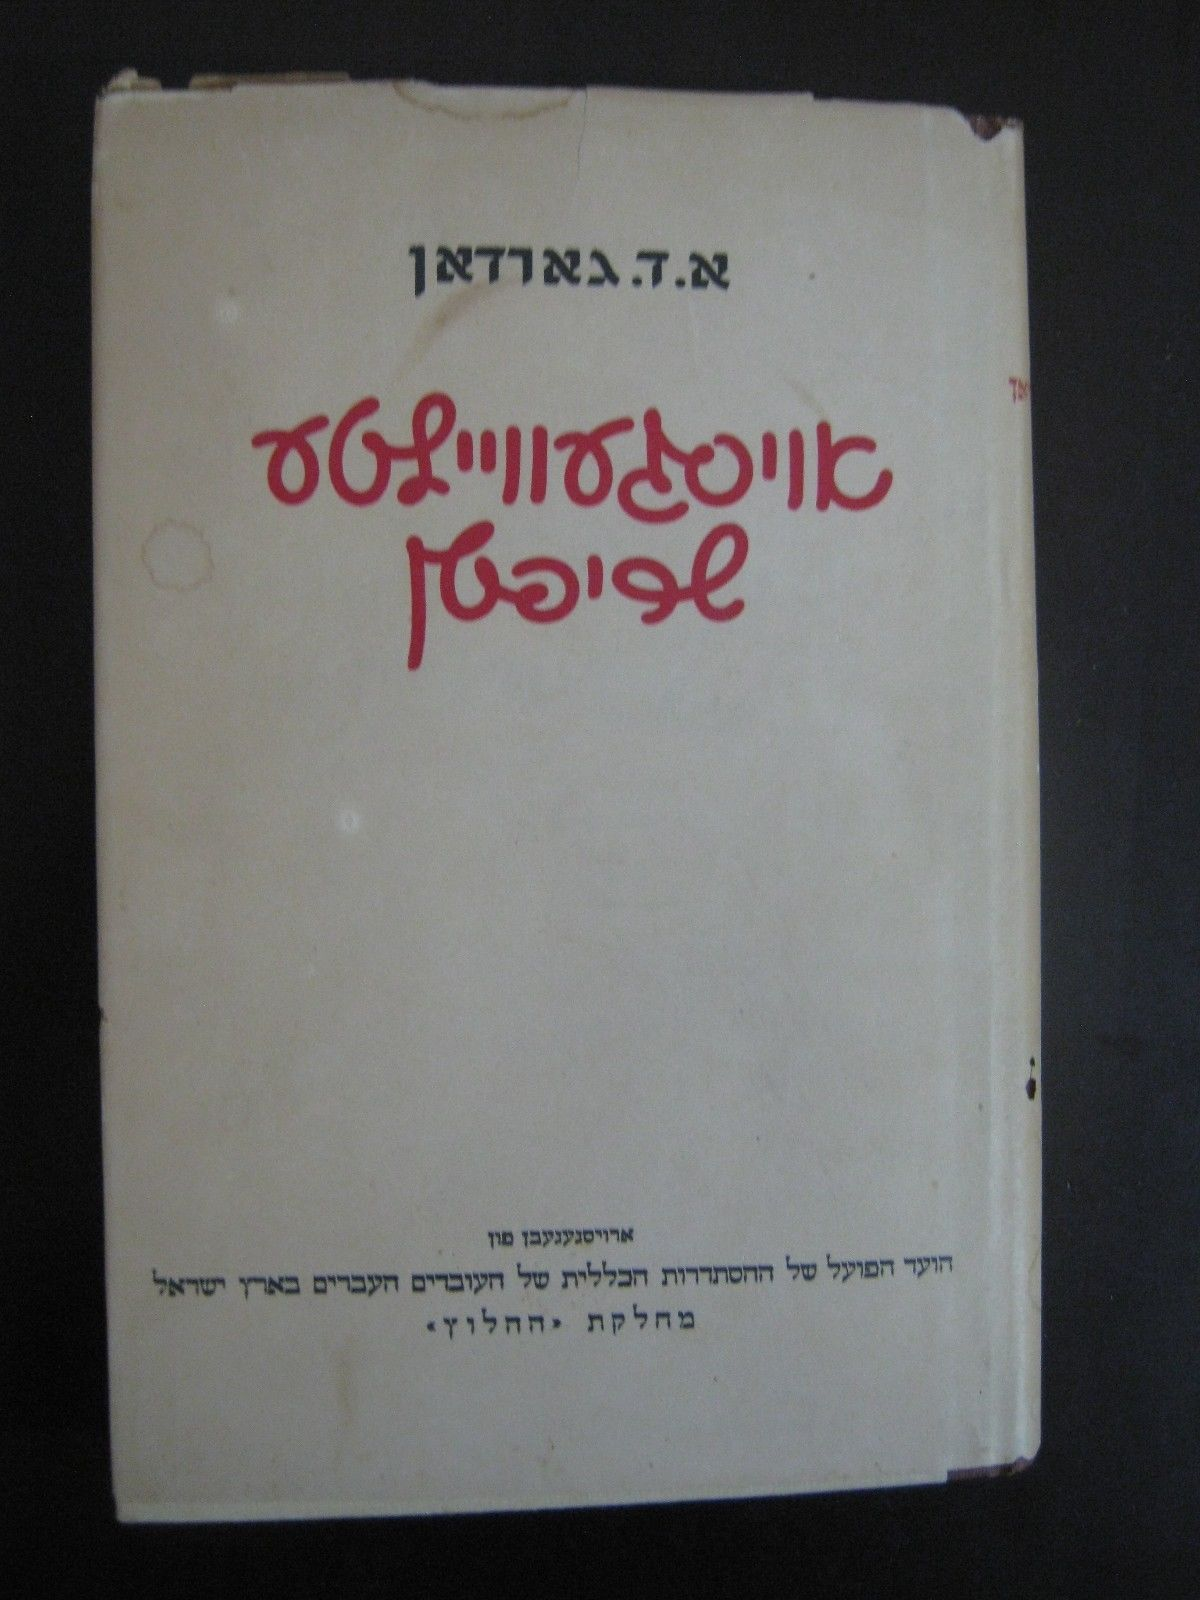 in Collectibles, Religion & Spirituality, Judaism